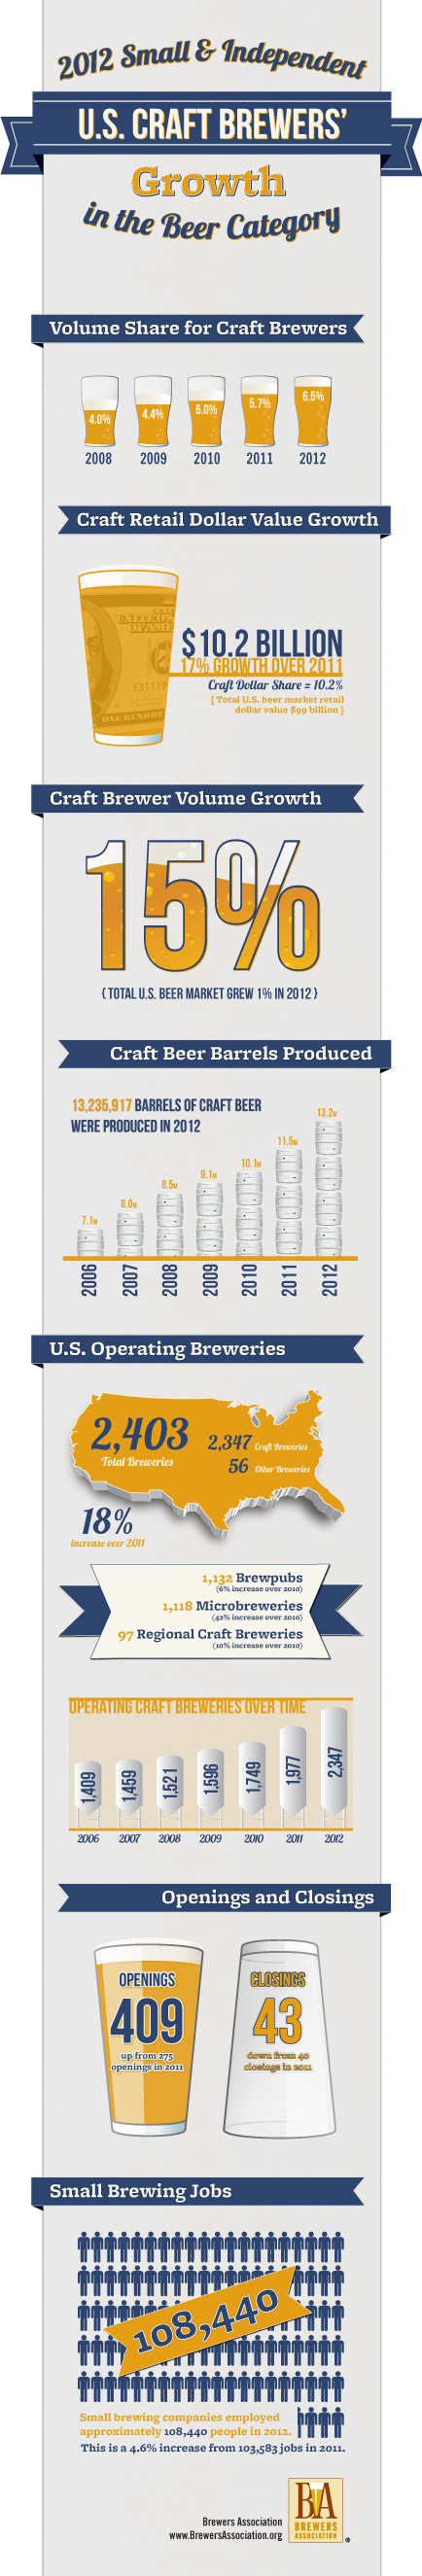 2012 US Craft Brewers Growth